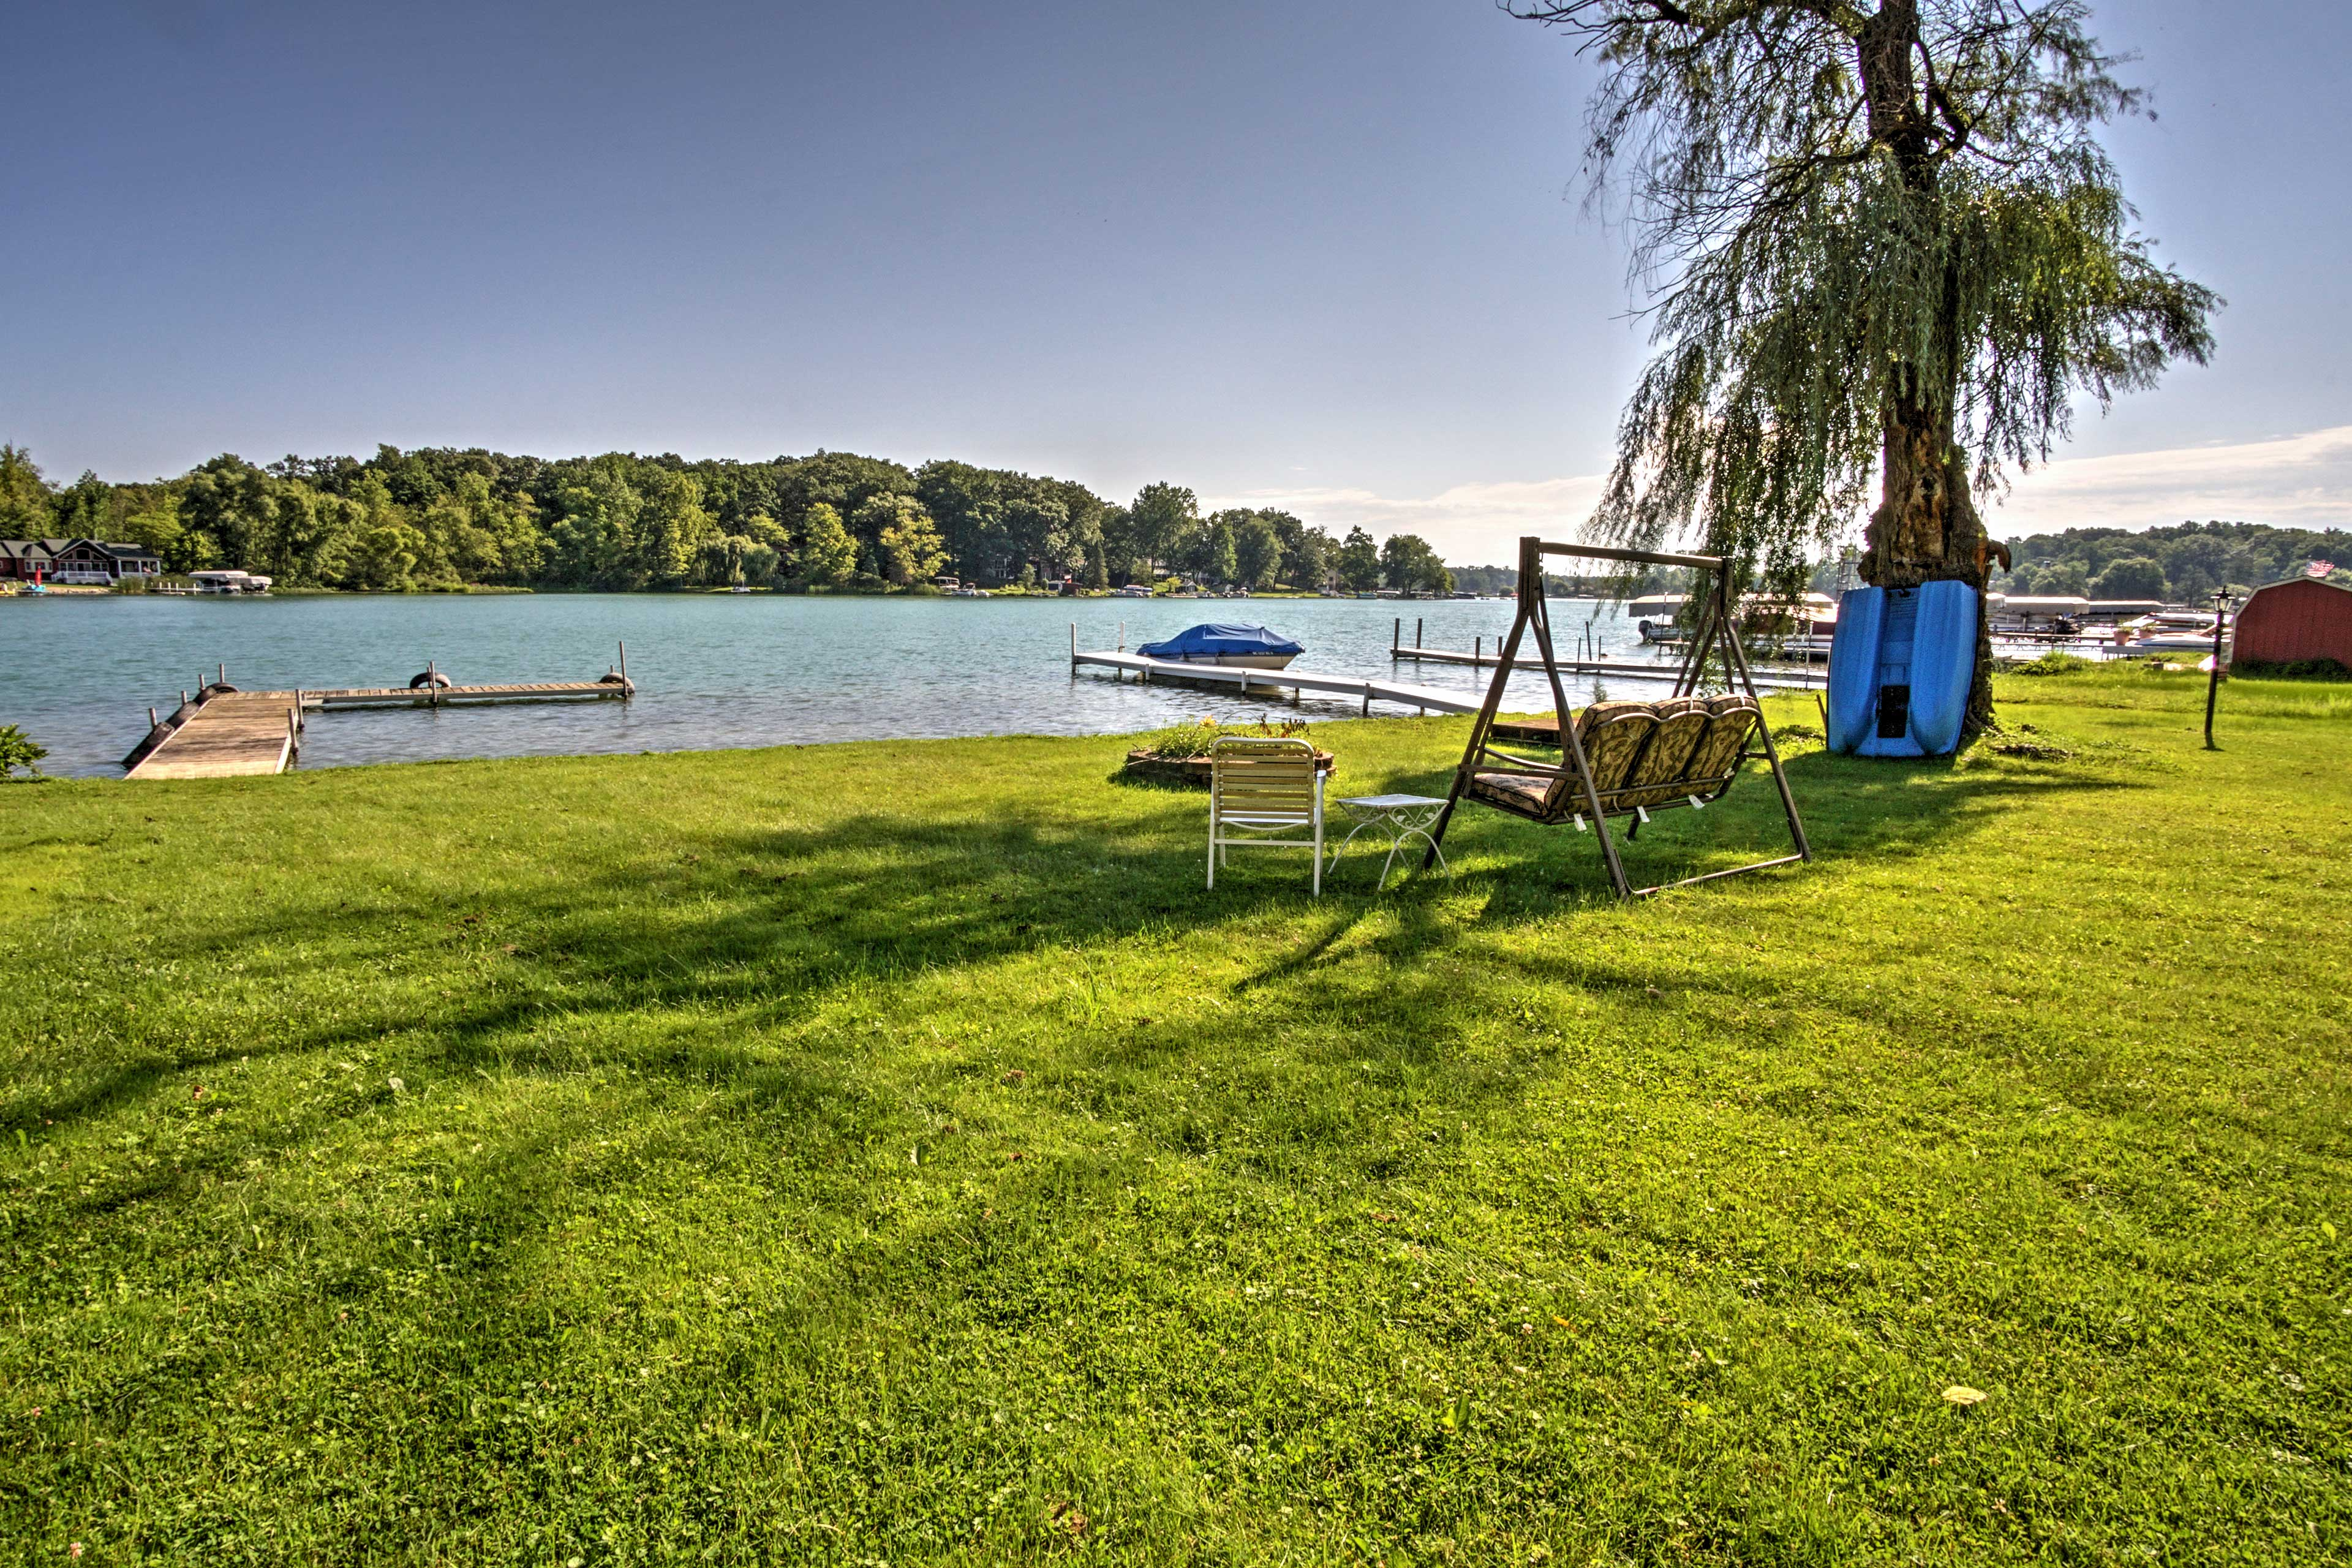 Head down to the bench swing by the water for a peaceful moment by the lake.